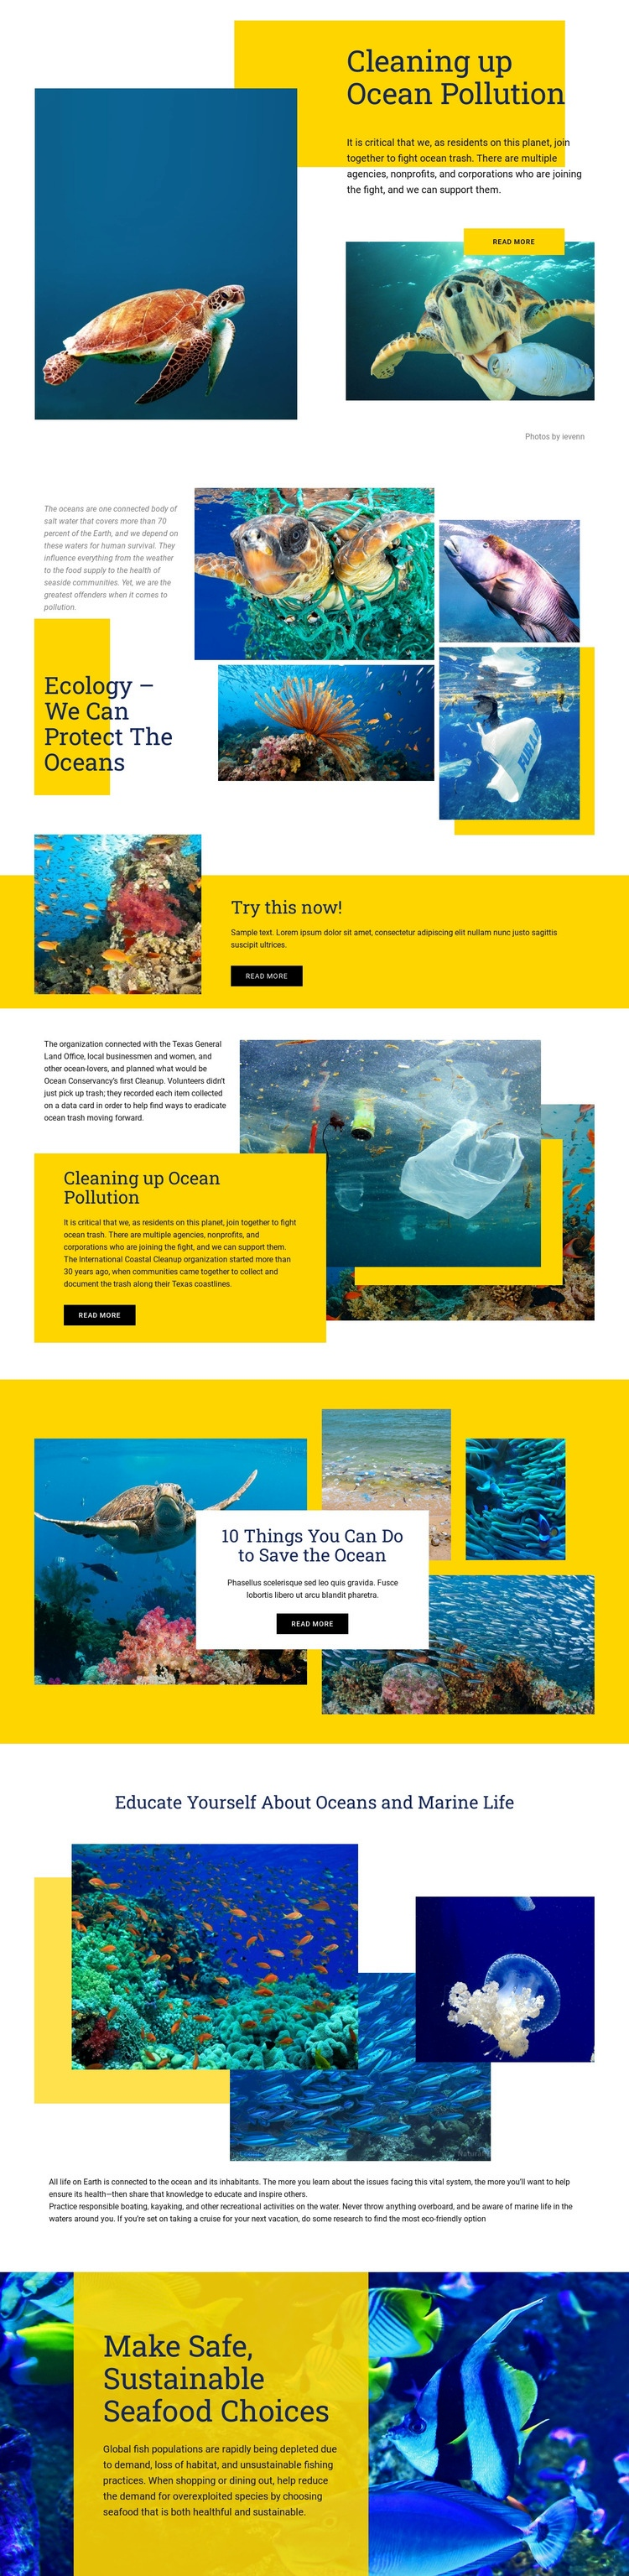 Protect The Oceans Html Code Example